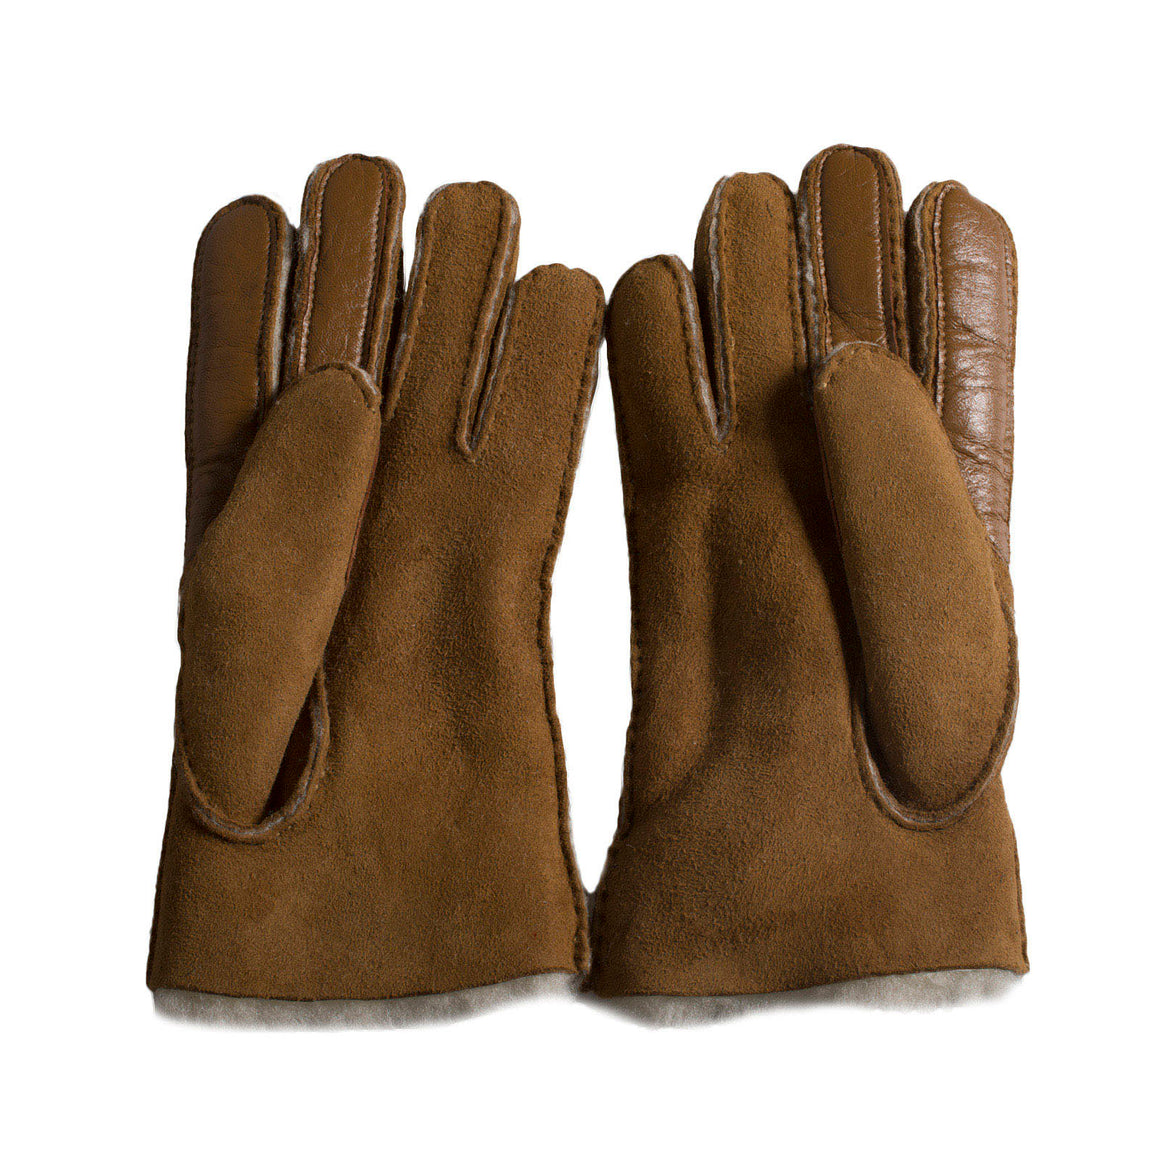 UGG Sheepskin Smart Chestnut Gloves - Women's